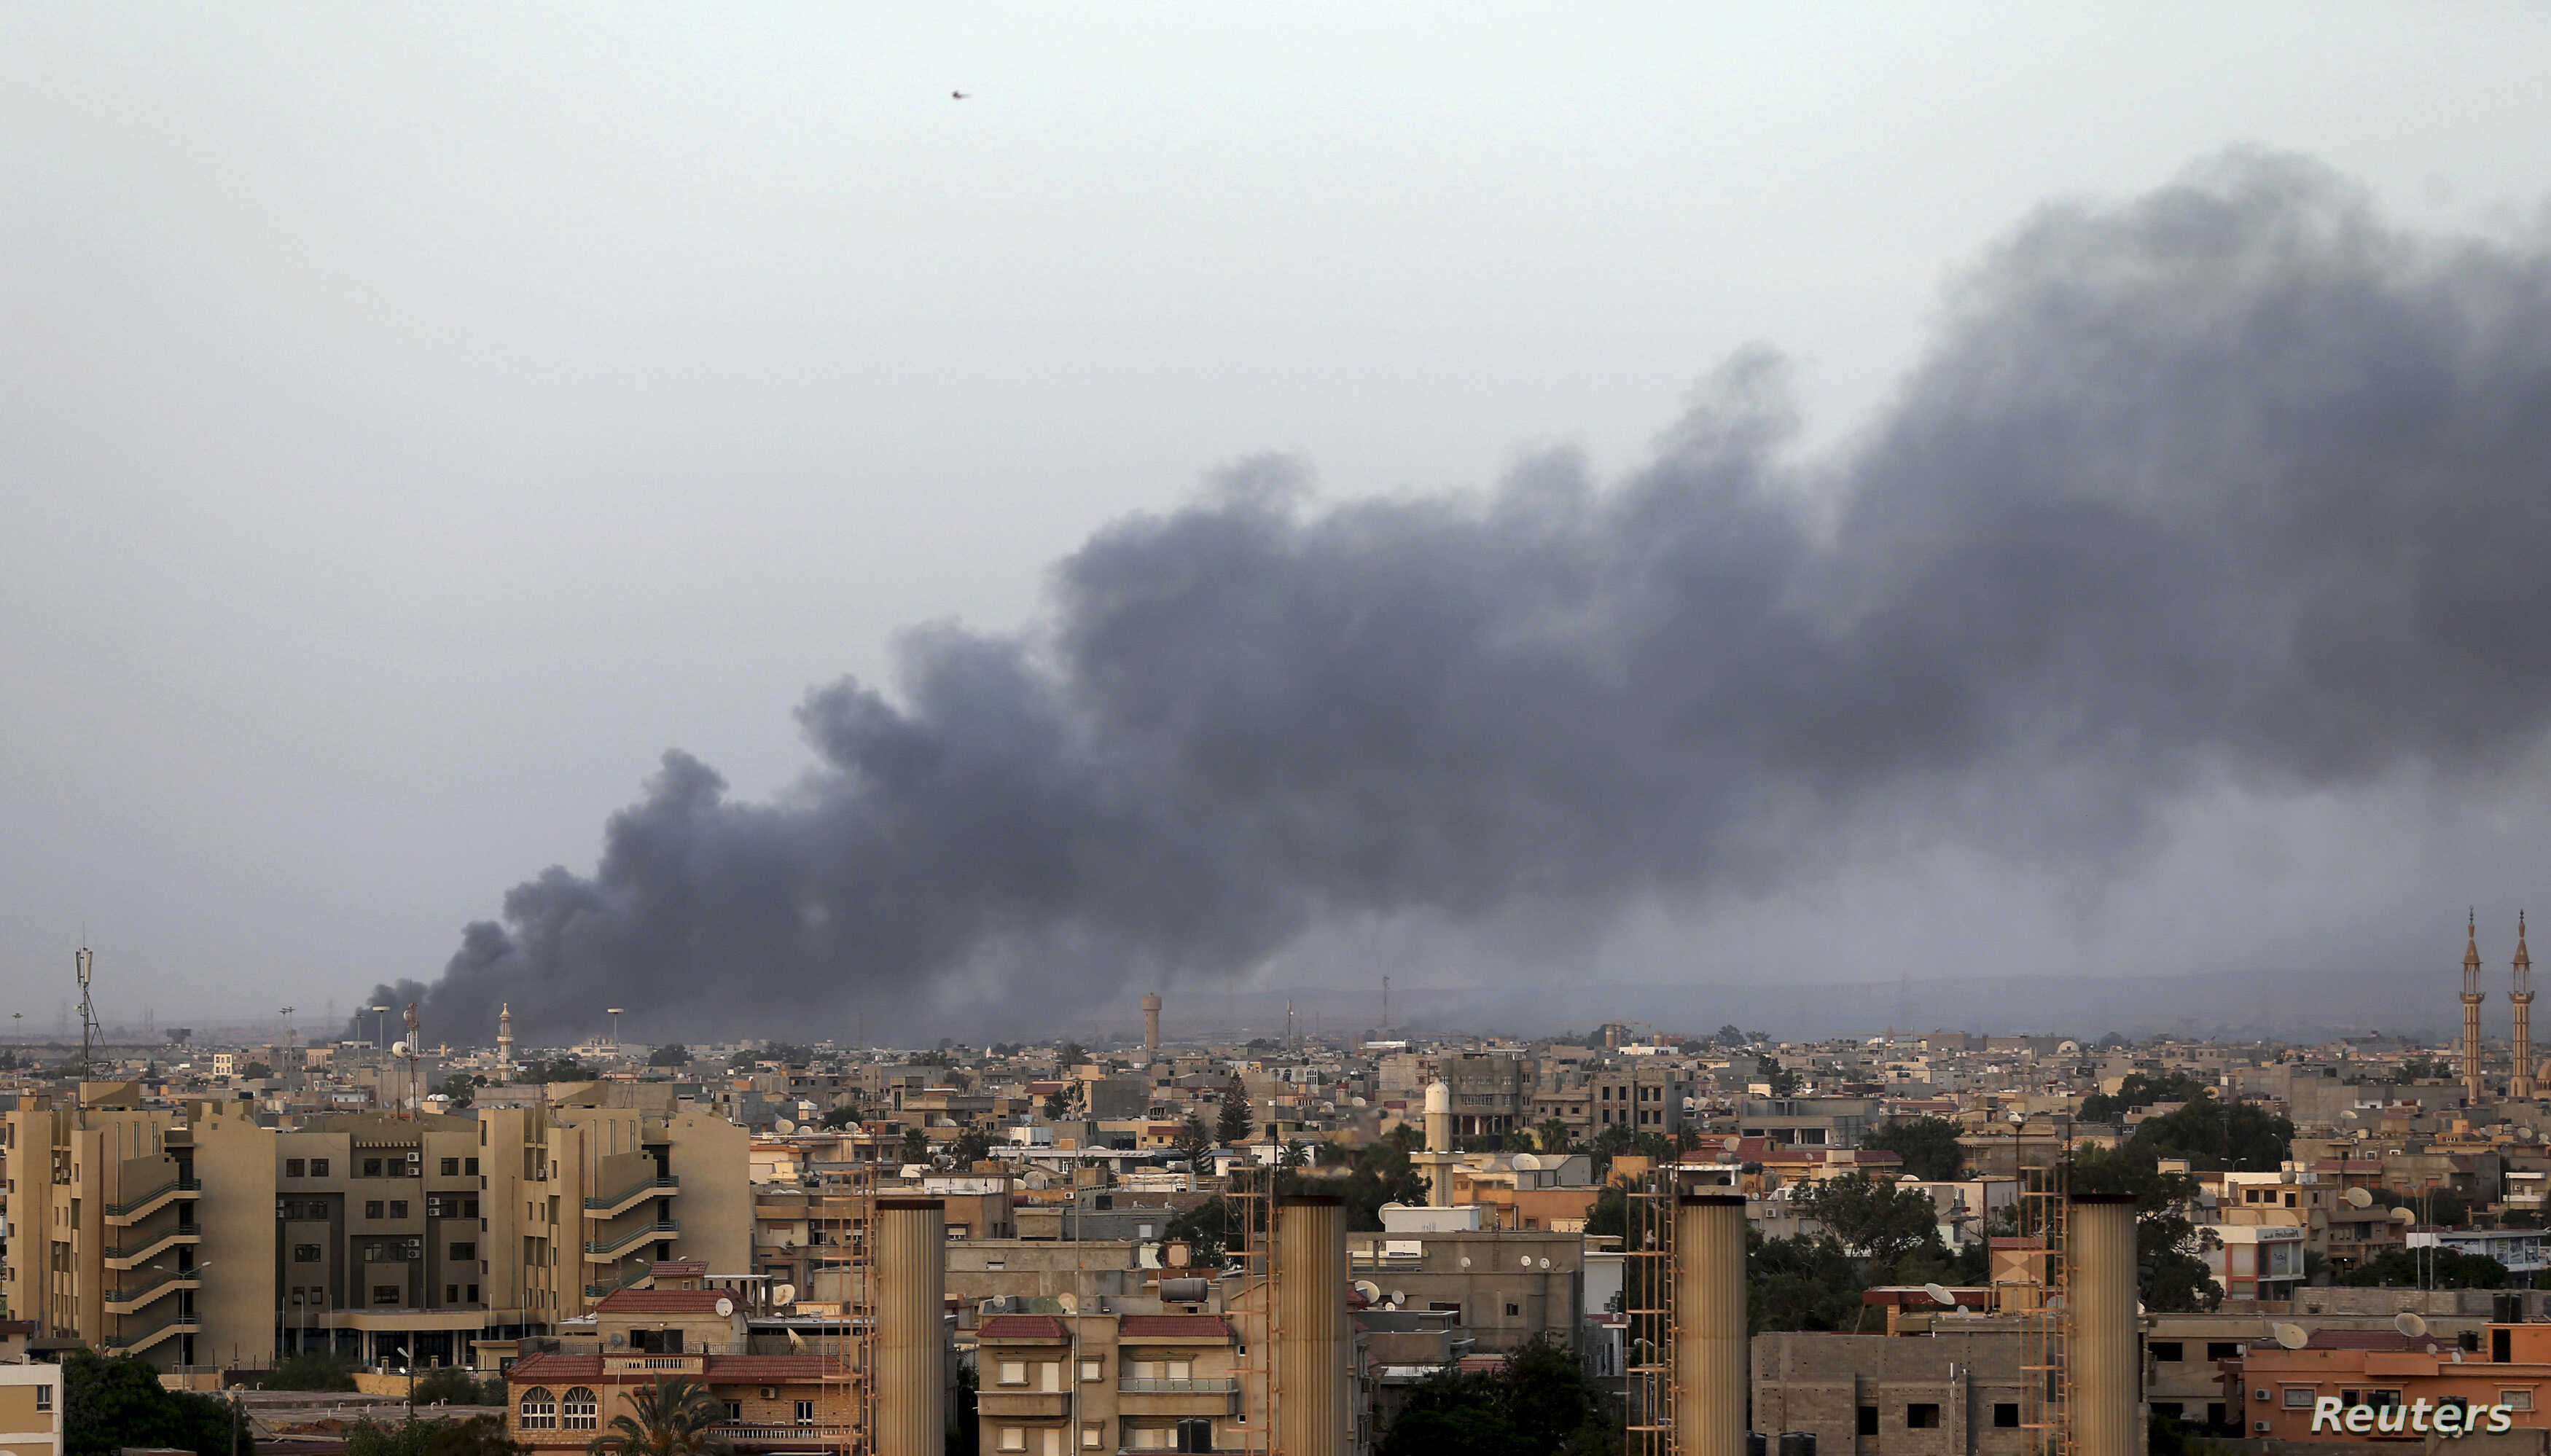 Plumes of black smoke can be seen after clashes between the Benghazi Revolutionaries Shura Council and fighters of renegade general Khalifa Haftar, as they each attempt to seize control of the airport from the council in Benghazi, Libya, Aug. 23, 201